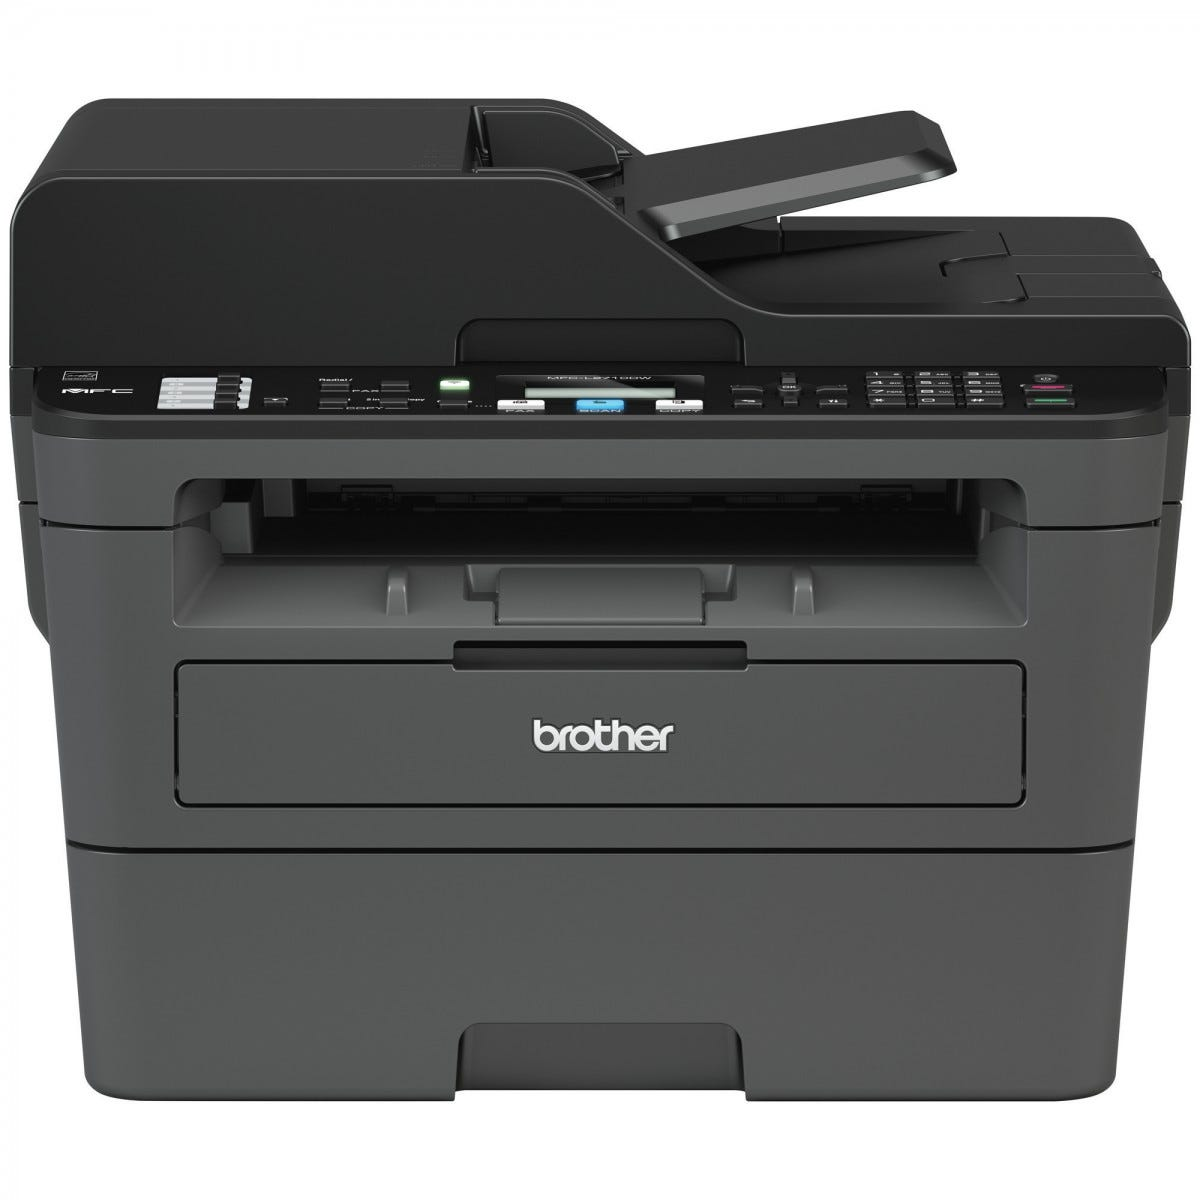 The Brother's ML-C2710dw printer